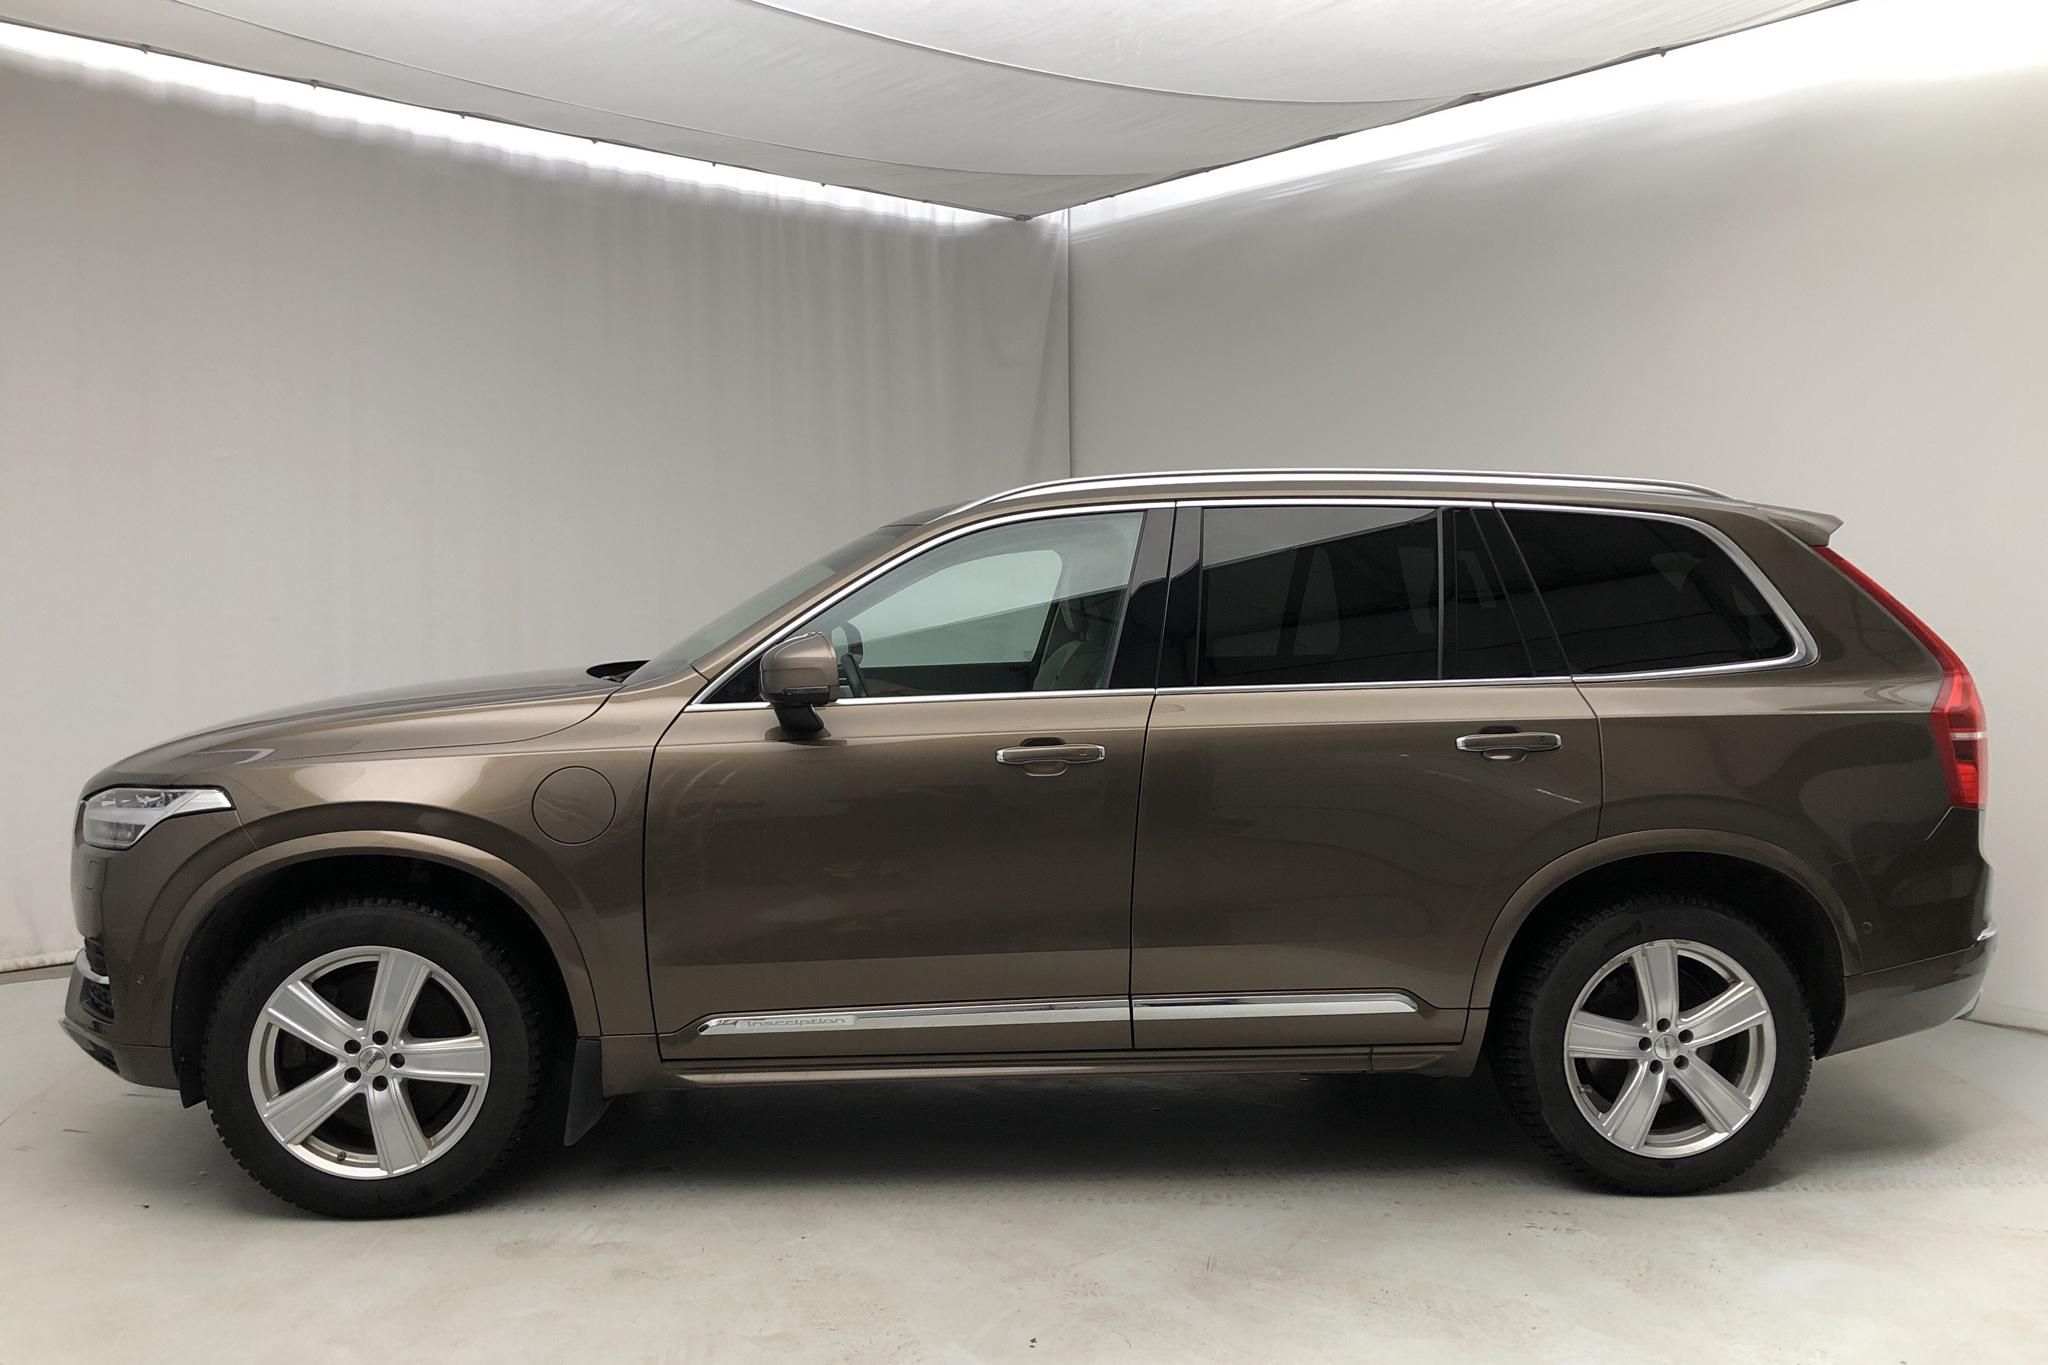 Volvo XC90 T8 AWD Twin Engine (400hk) - 108 920 km - Automatic - brown - 2017